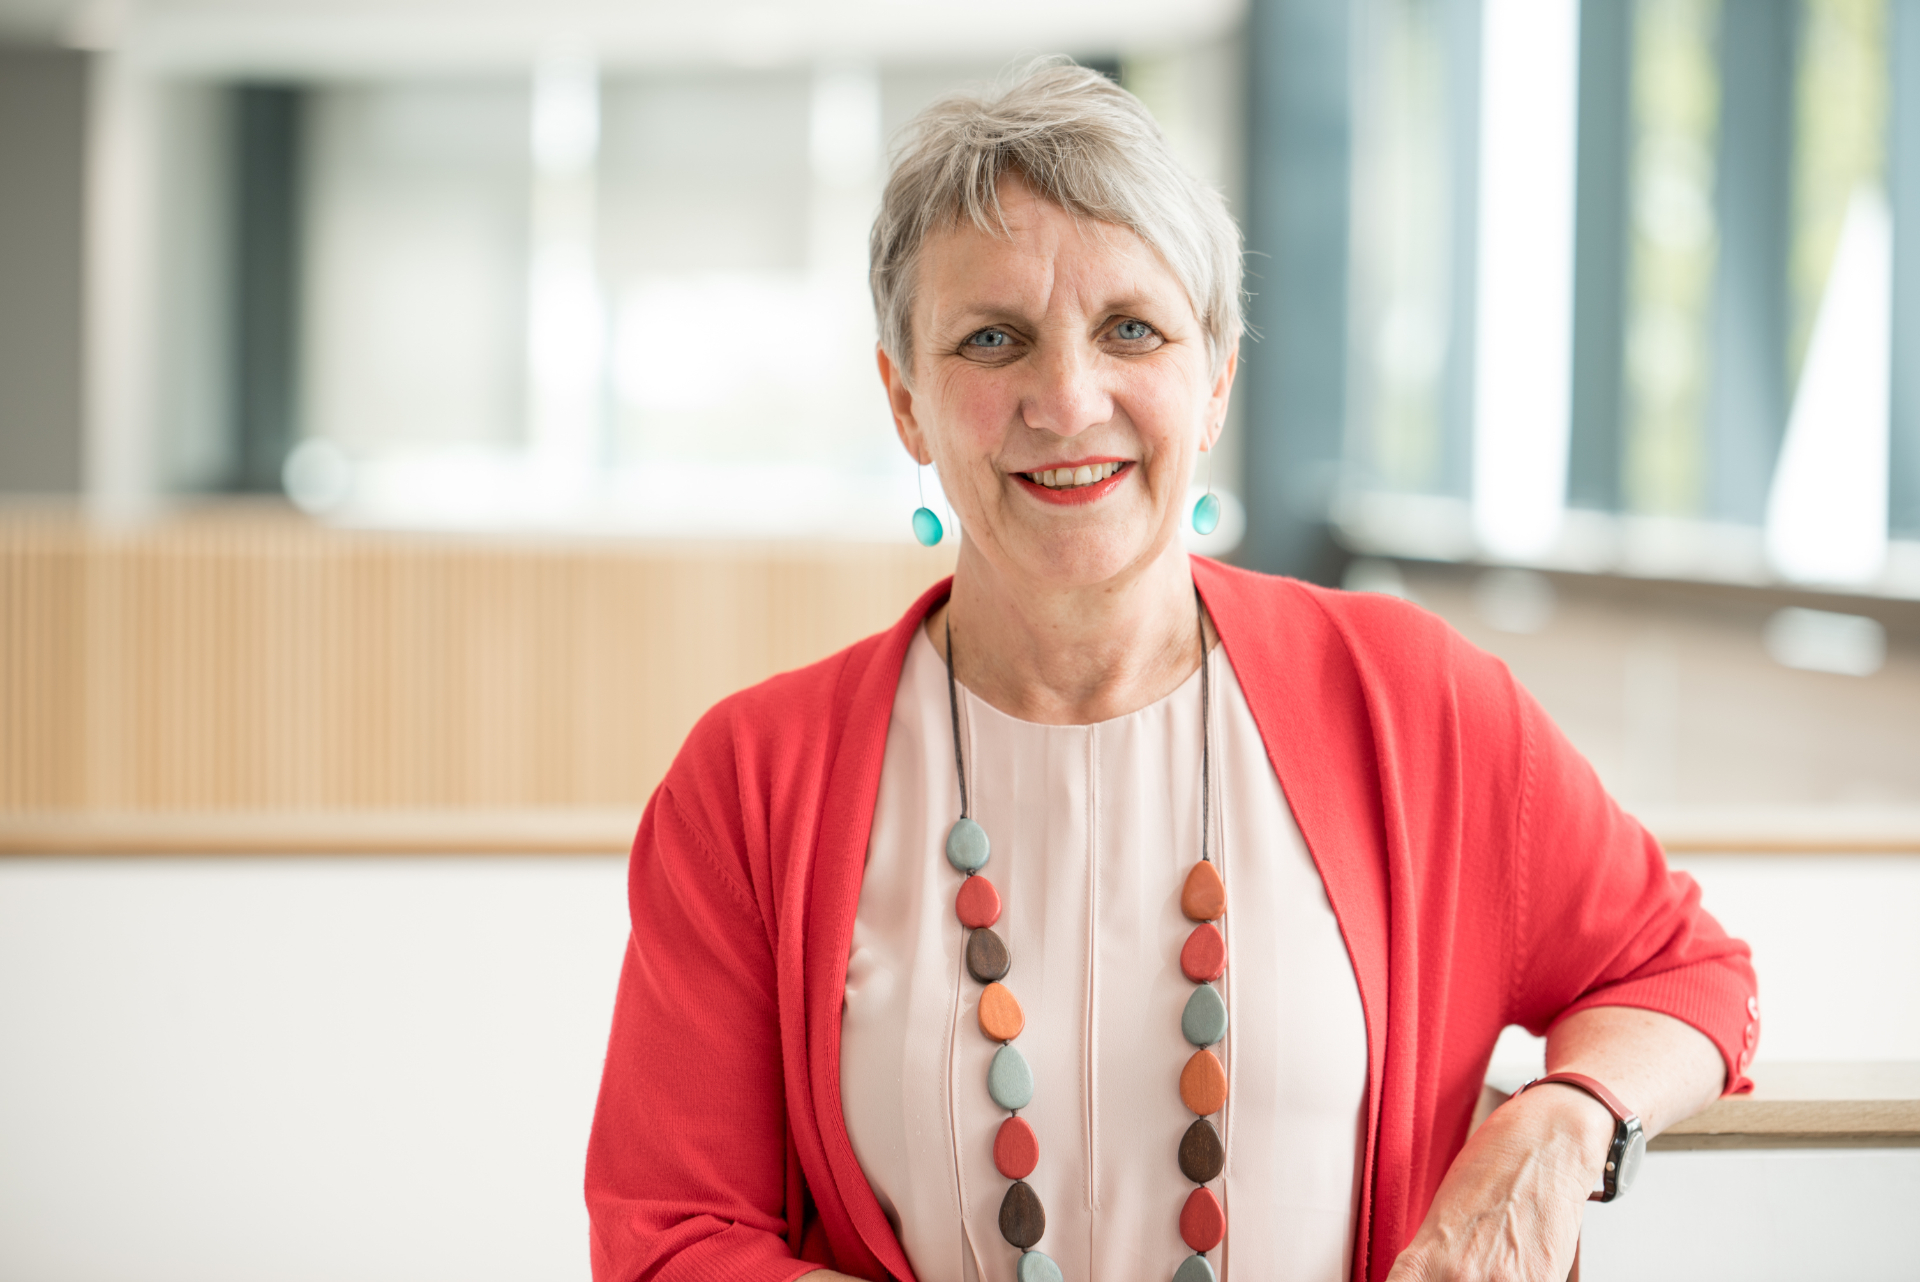 Professor Kate Hunt is the principal investigator of the broader Tobacco in Prisons Study